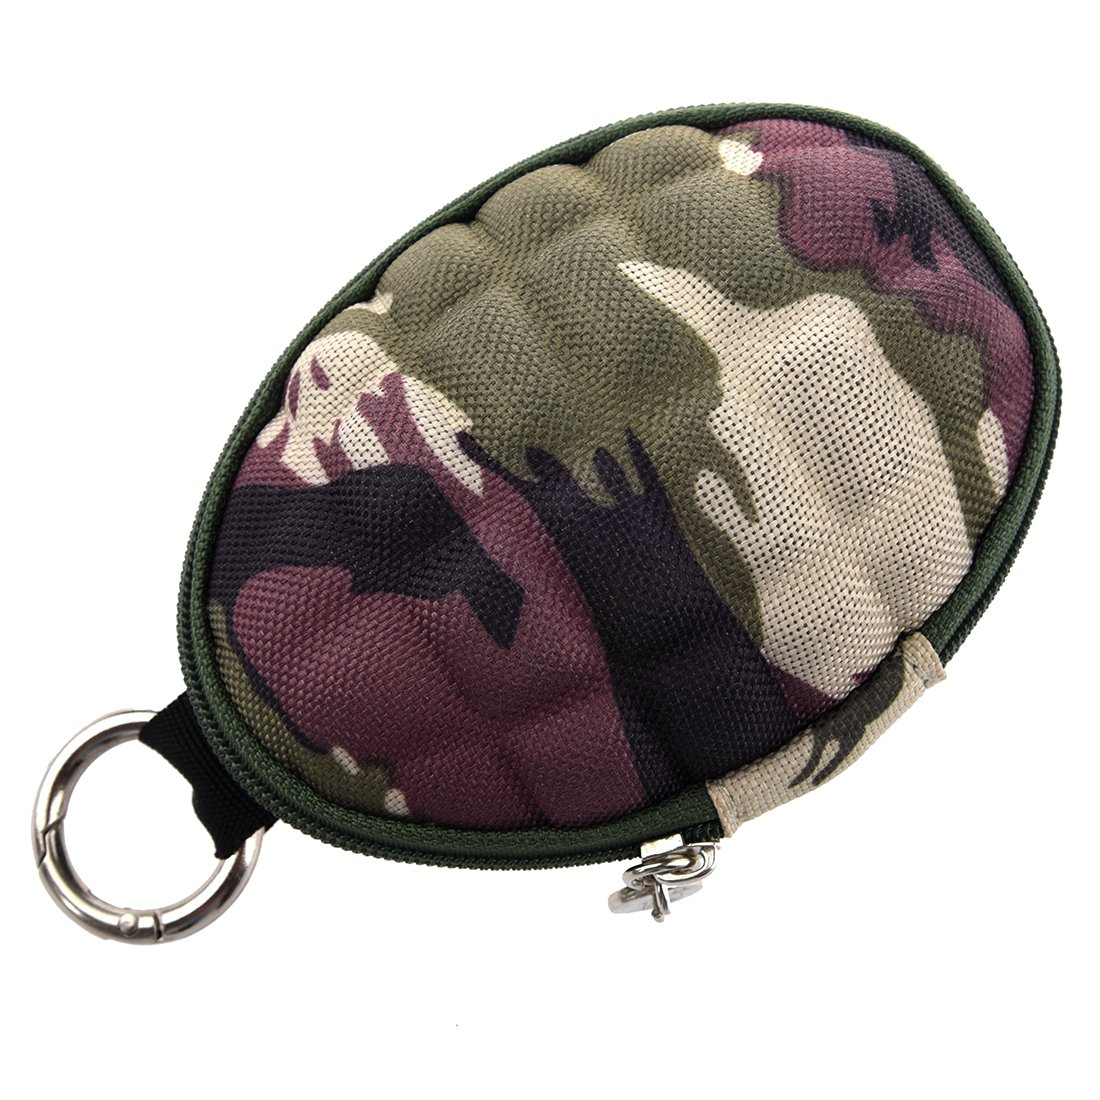 Amazon.com : key case - TOOGOO(R)Grenade type!Camouflage Key ...